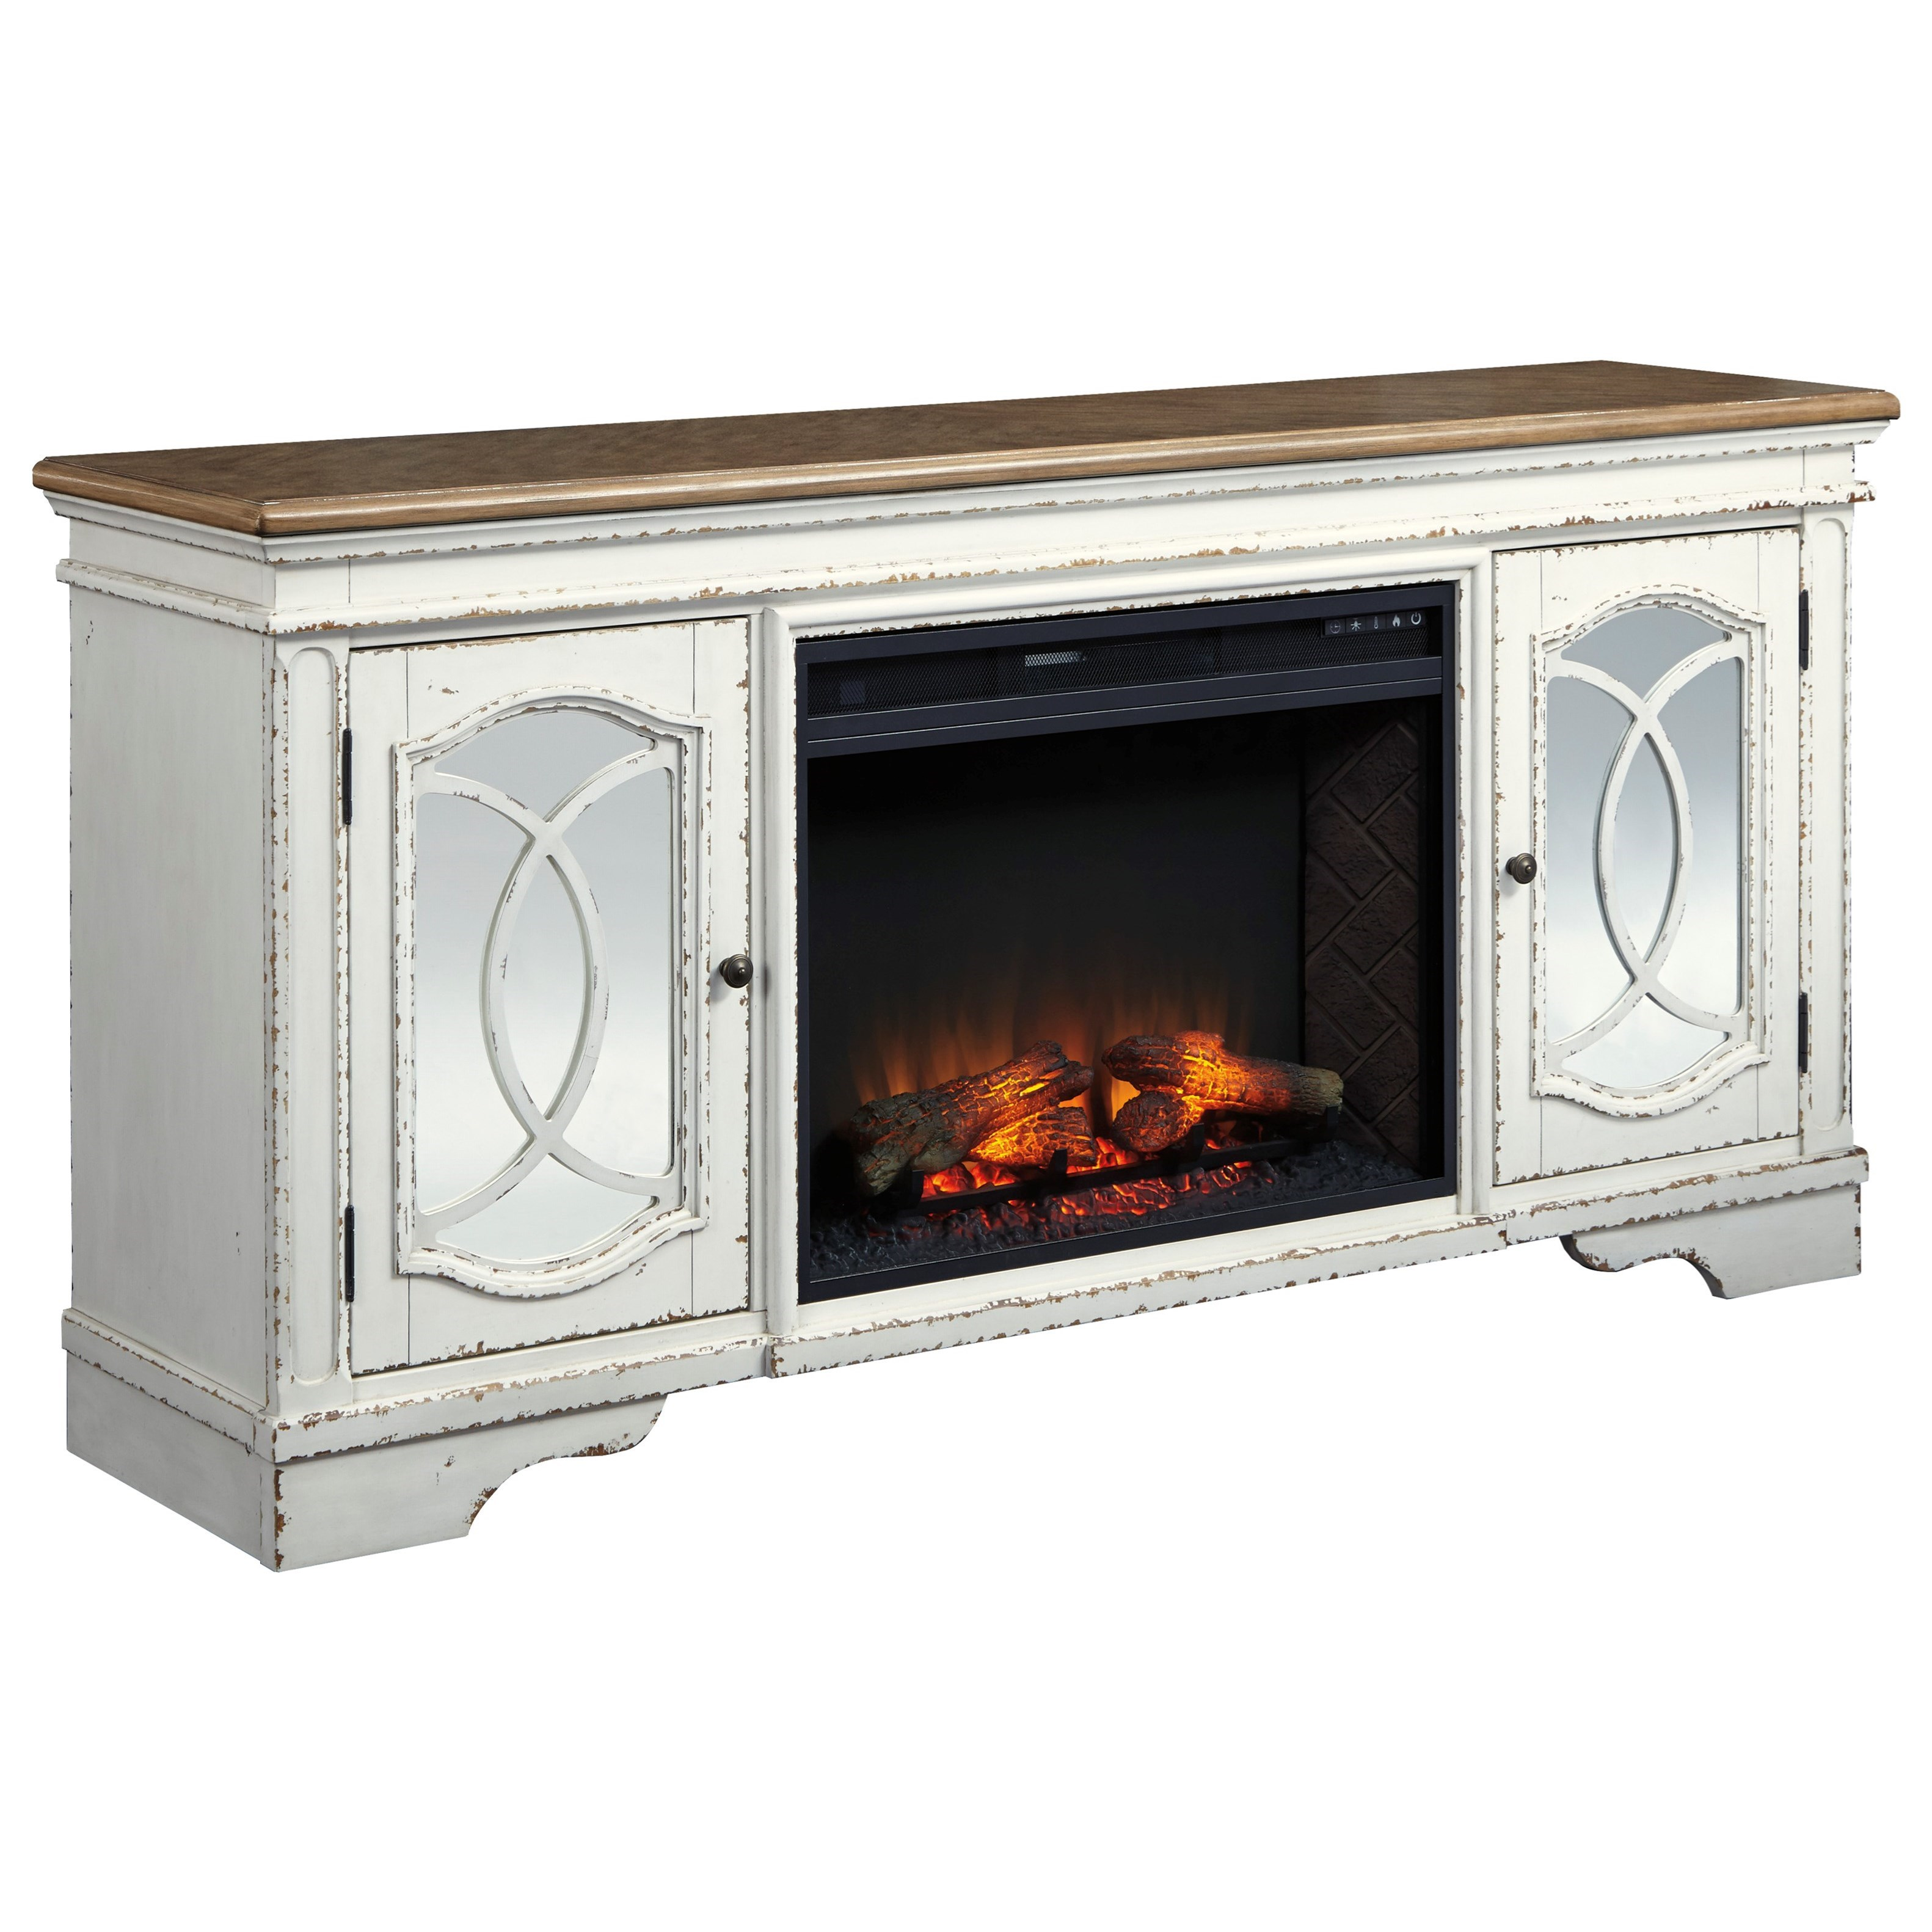 TV Stand with Fireplace Insert